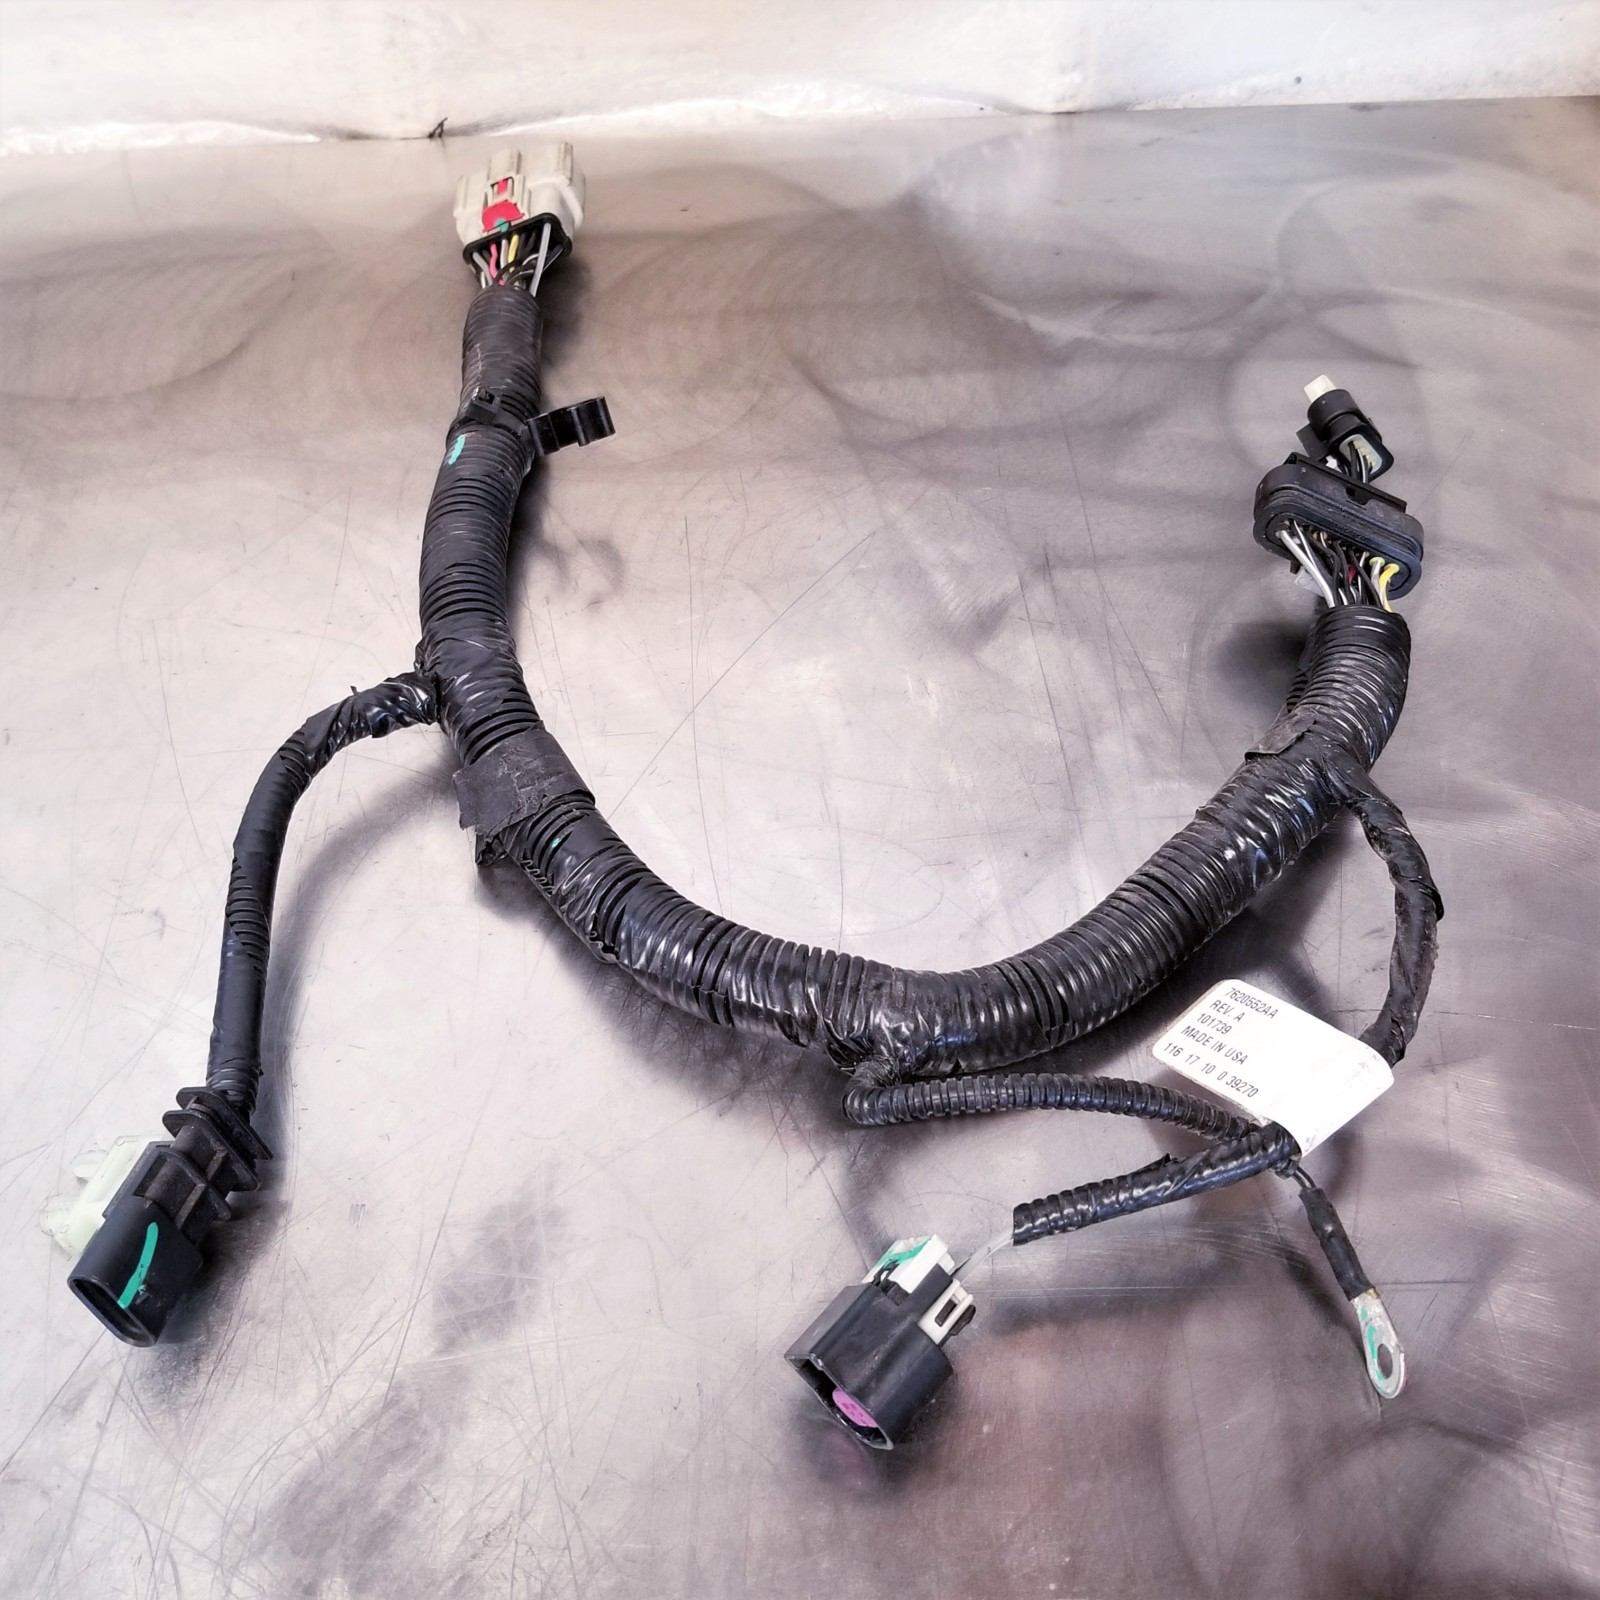 Sensational Genuine Cummins Diesel Exhaust Fluid Ram 6 7 Def System Main Wiring 101 Vieworaxxcnl